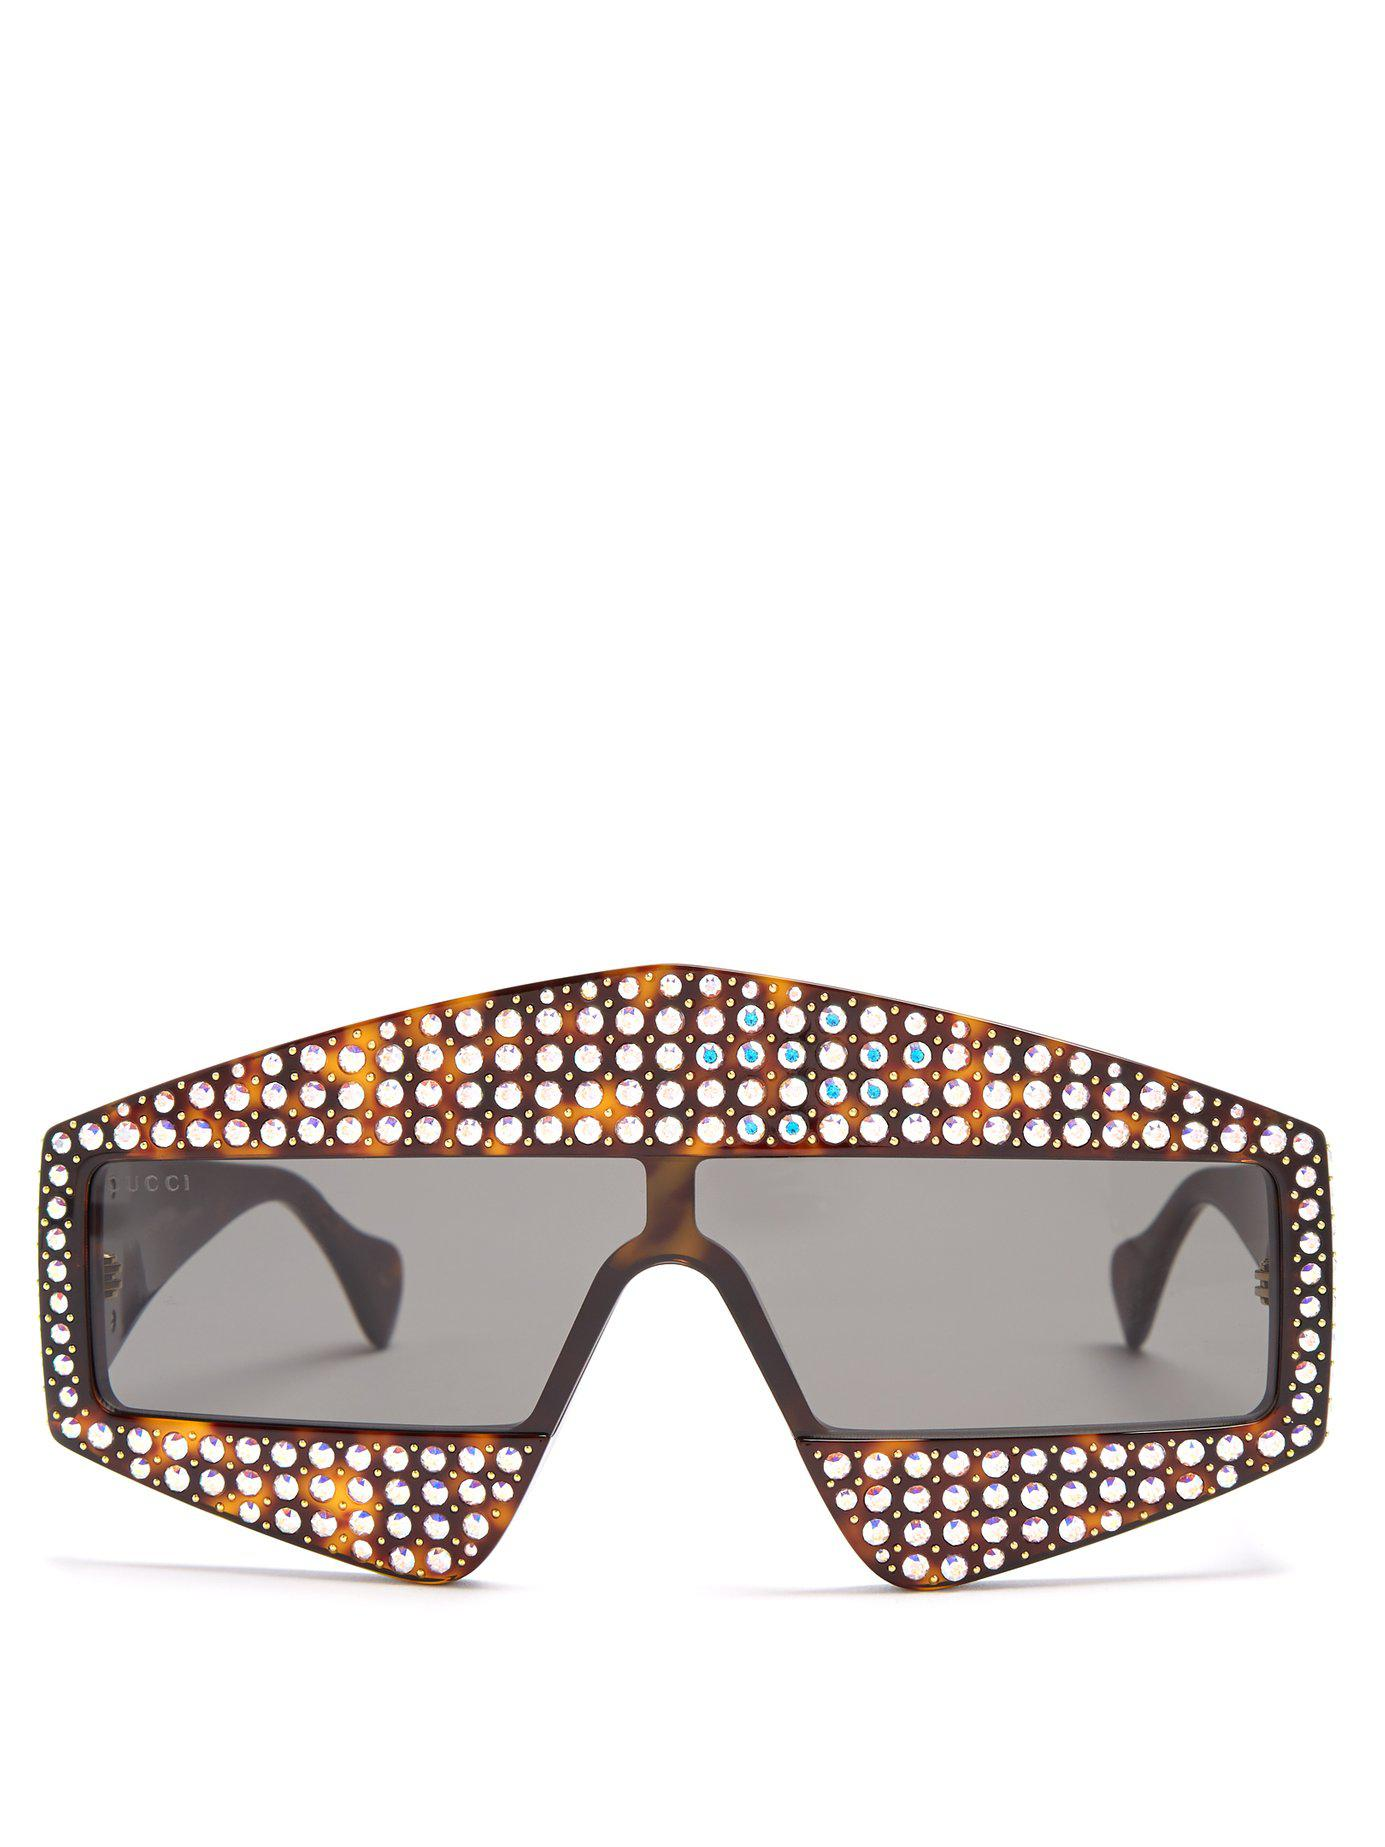 30ec8e451ad Lyst - Gucci Crystal Embellished Acetate Sunglasses in Brown